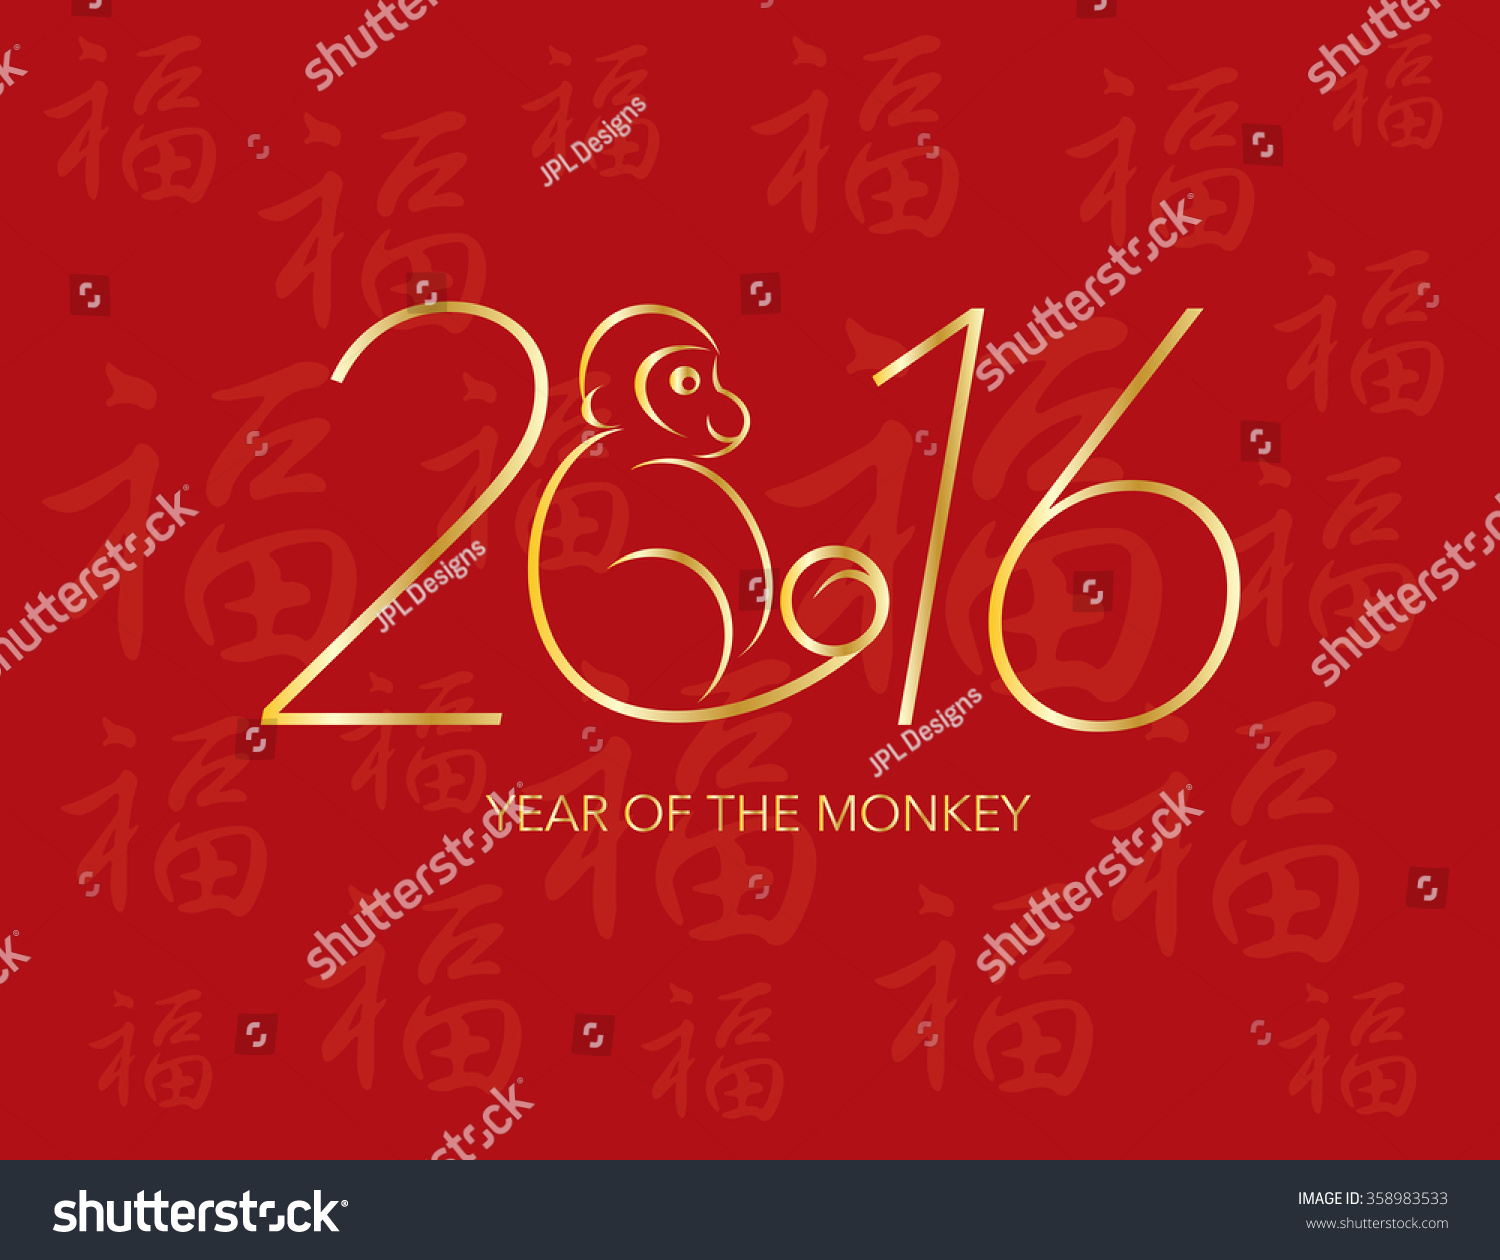 New Year S Line Art : Chinese new year monkey numerals stock vector